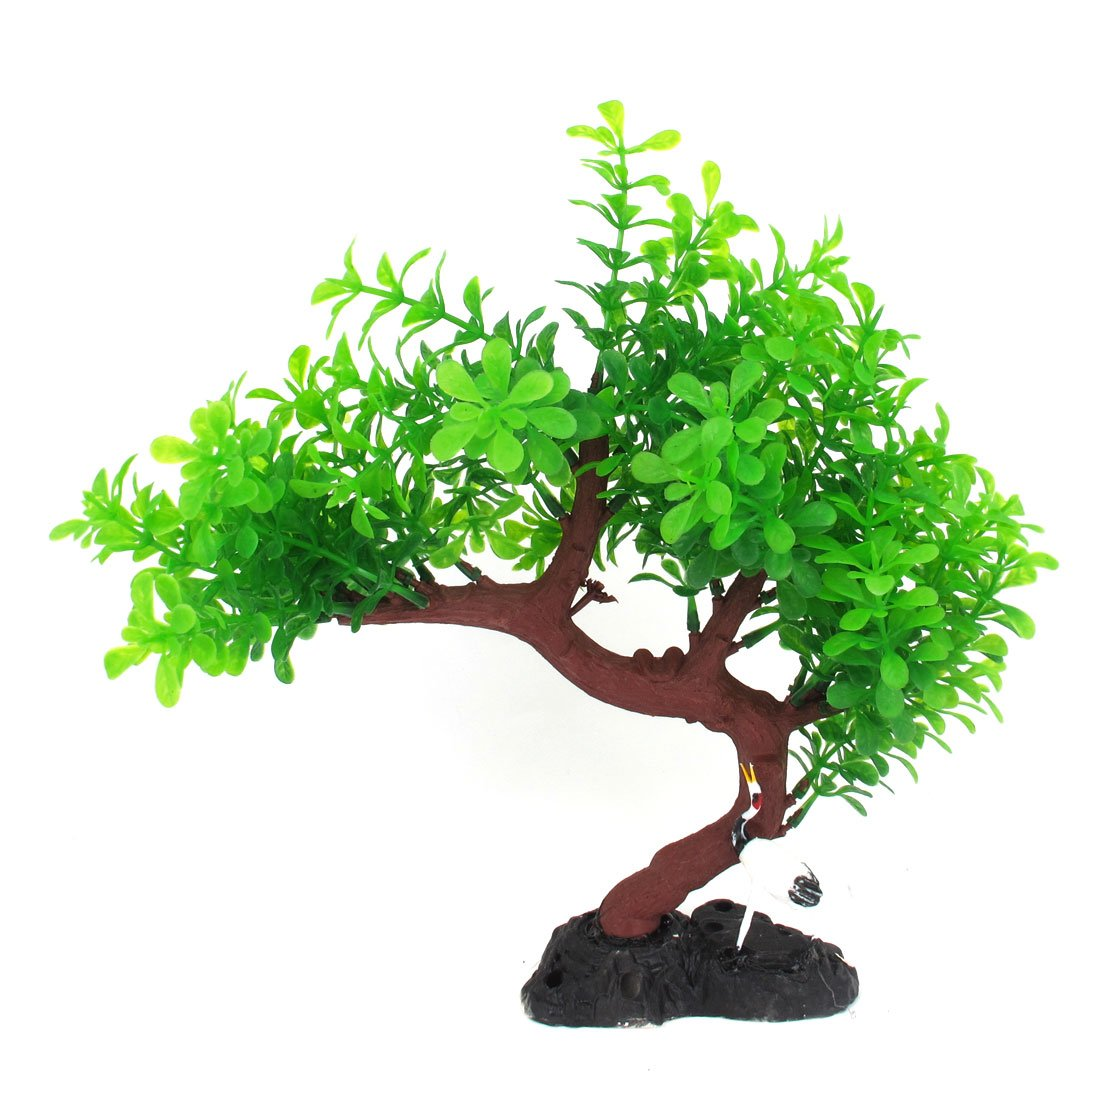 Uxcell a13061700ux0450 Aquarium Green Leaf Burgundy Tree Branch Plant 10.6-Inch Height Bird Decor